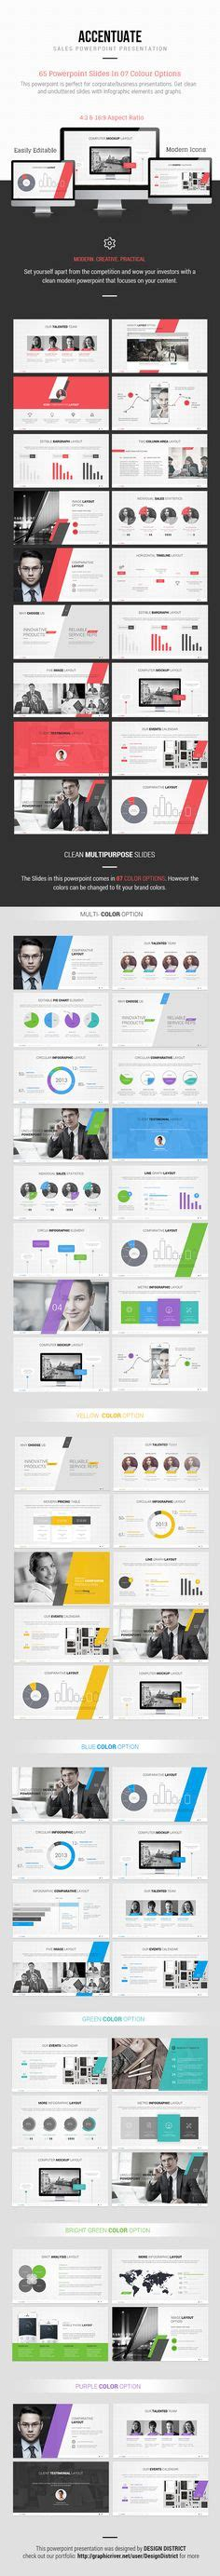 powerpoint template by design district via behance pinterest the world s catalog of ideas